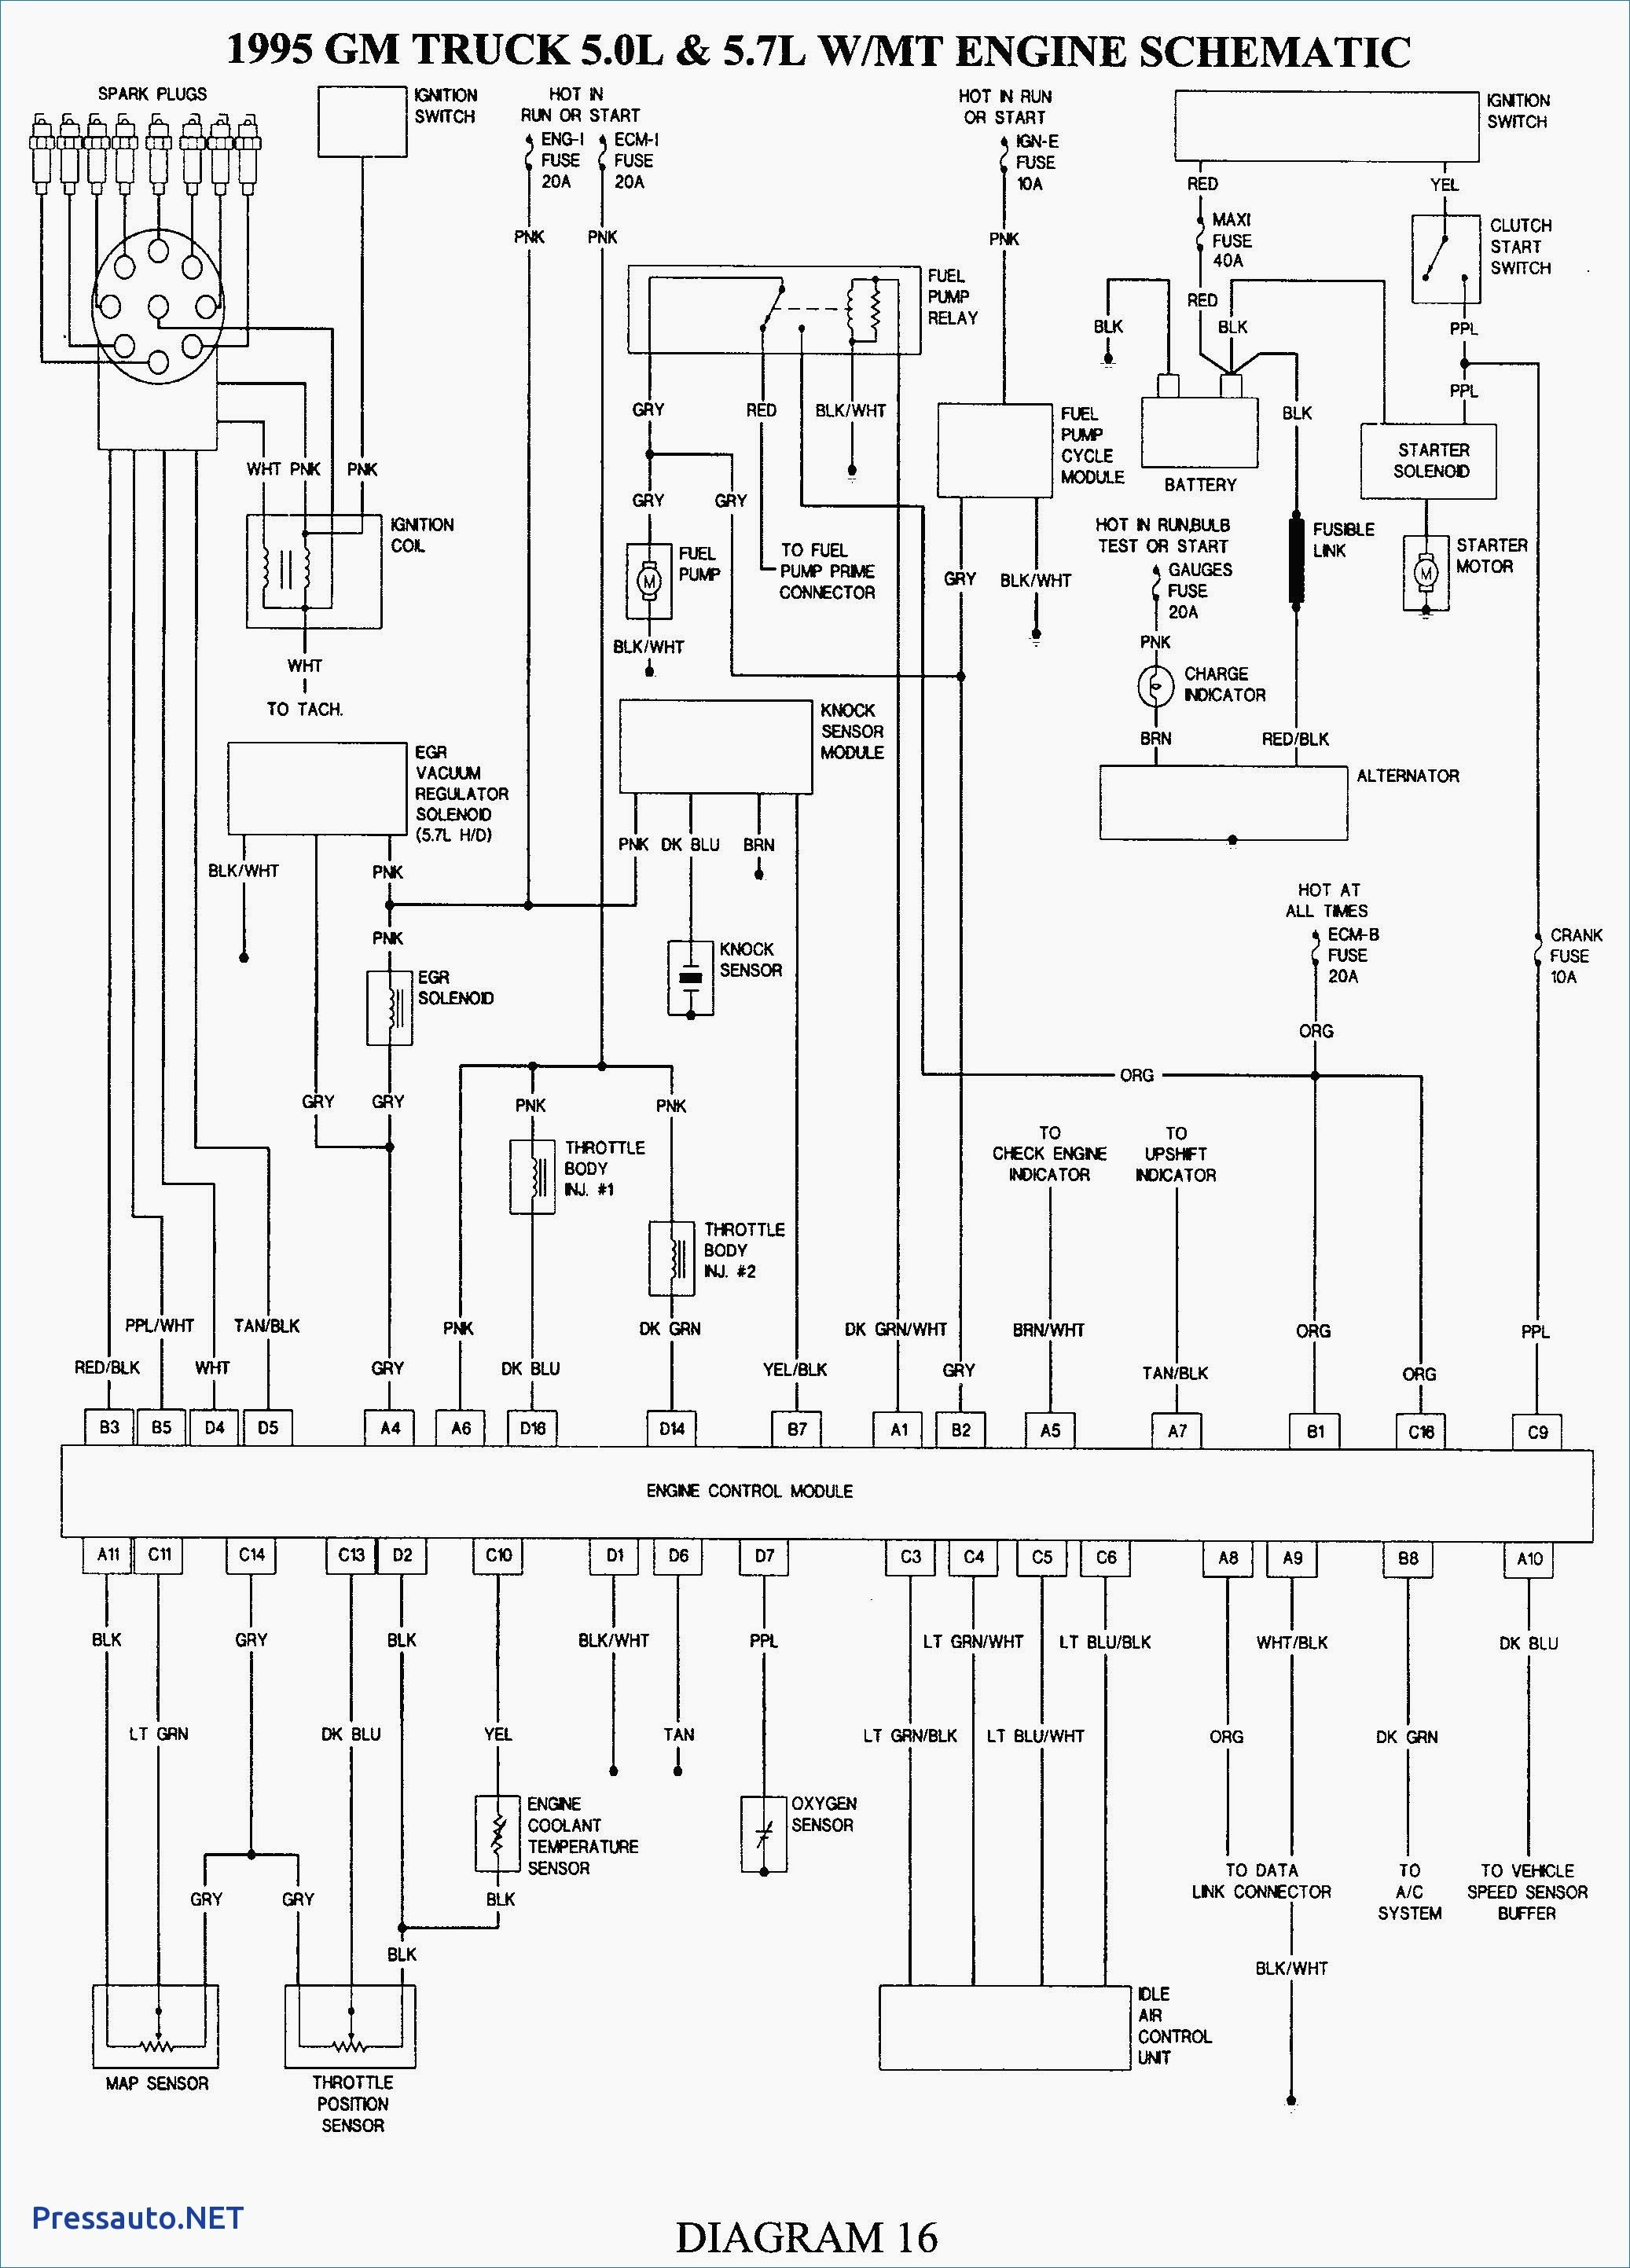 1995 Mack Truck Wire Diagrams Wiring Library Sterling Schematic Ecm Diagram 2003 Yukon U2022 Rh Alumniplus Co